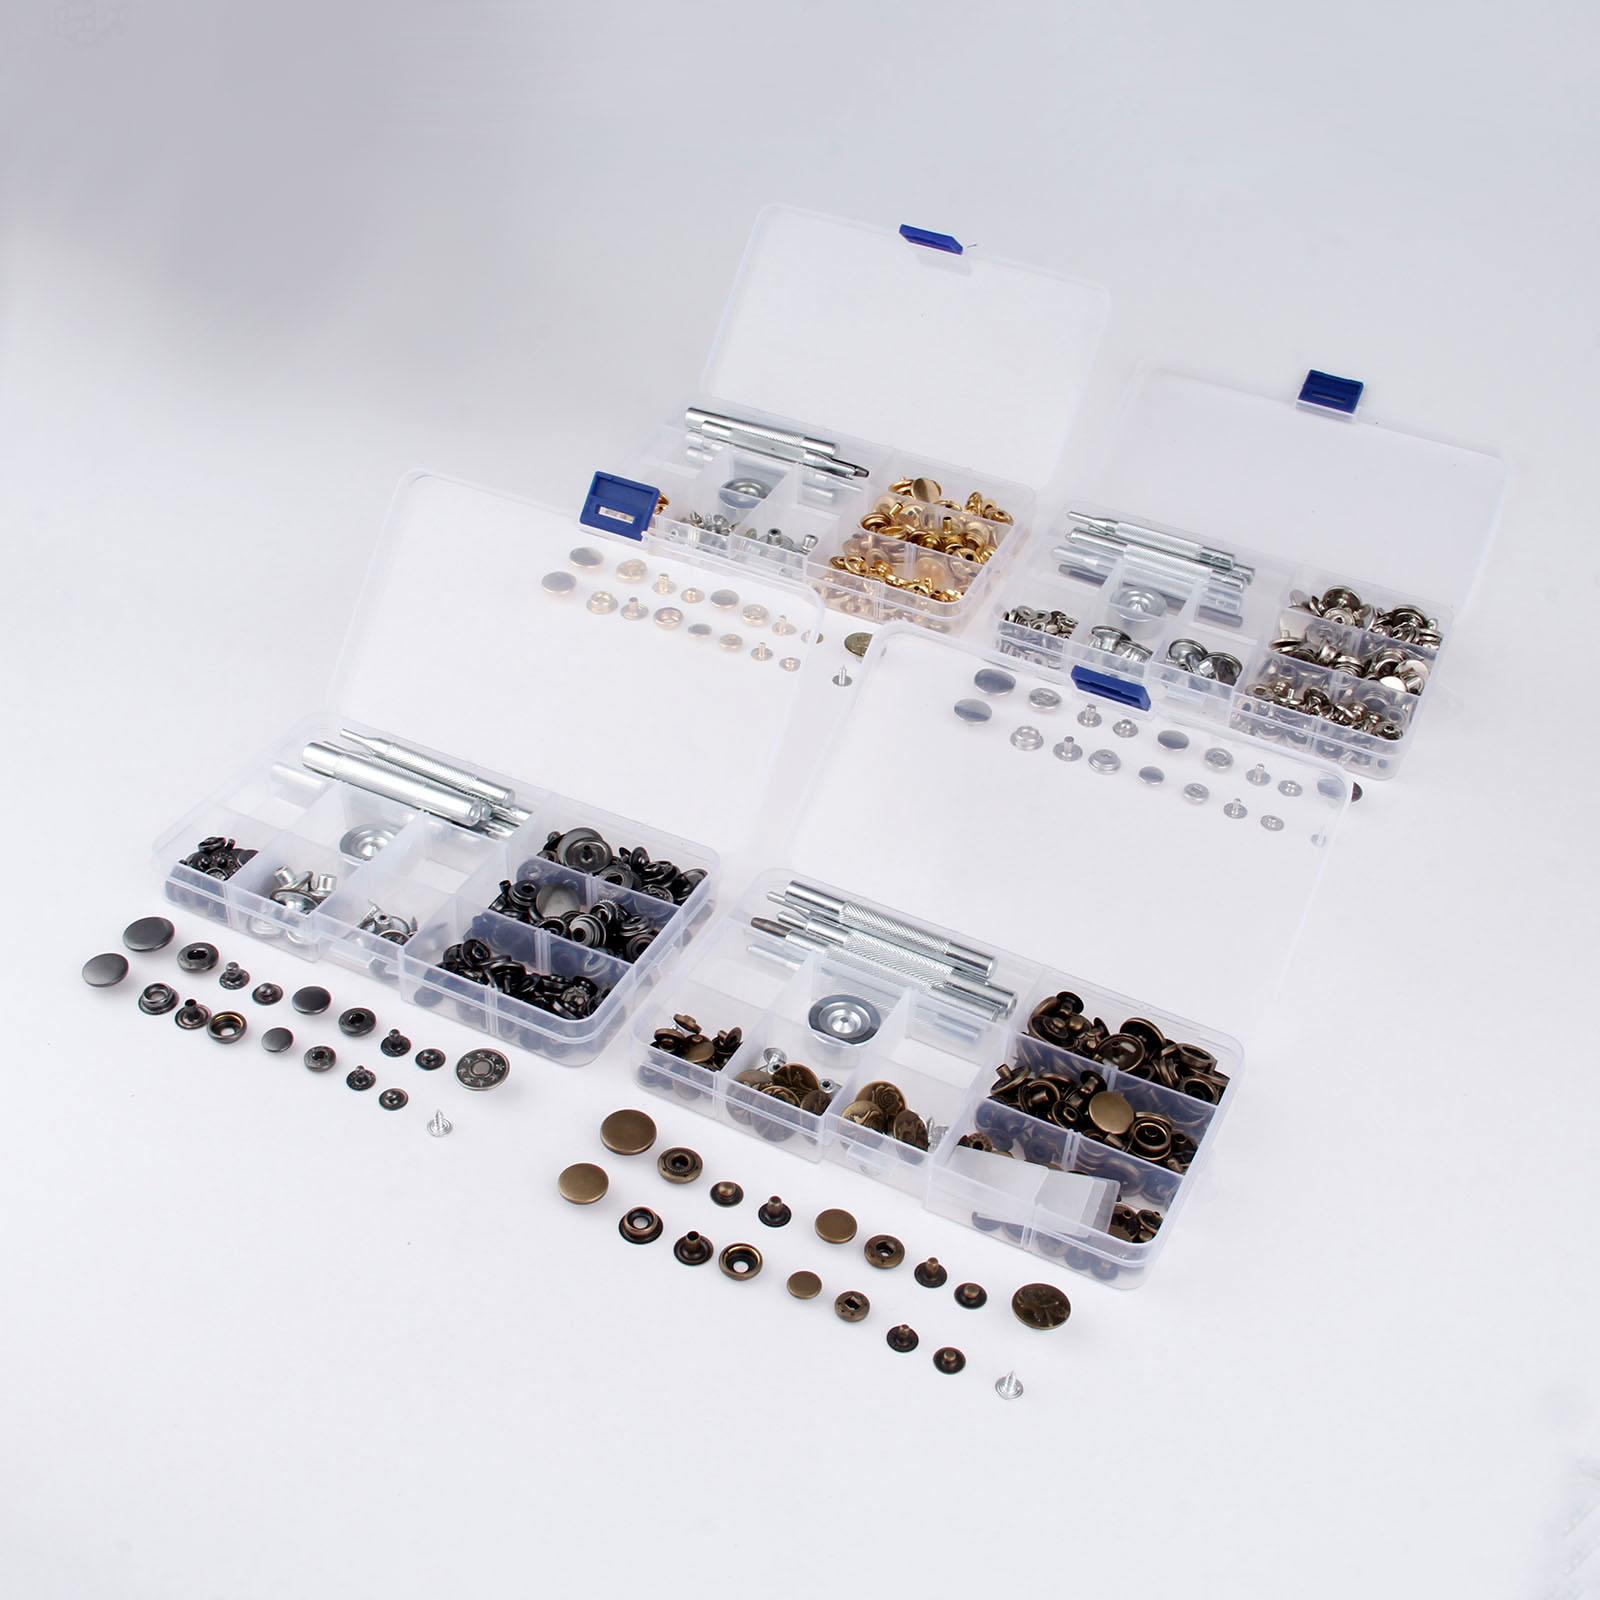 50 Set 10-17mm Metal DIY Sewing Snap Fastener Press Stud Buttons Leather Craft Jeans Button+9pcs Fixing Tools Kit+Storage Box